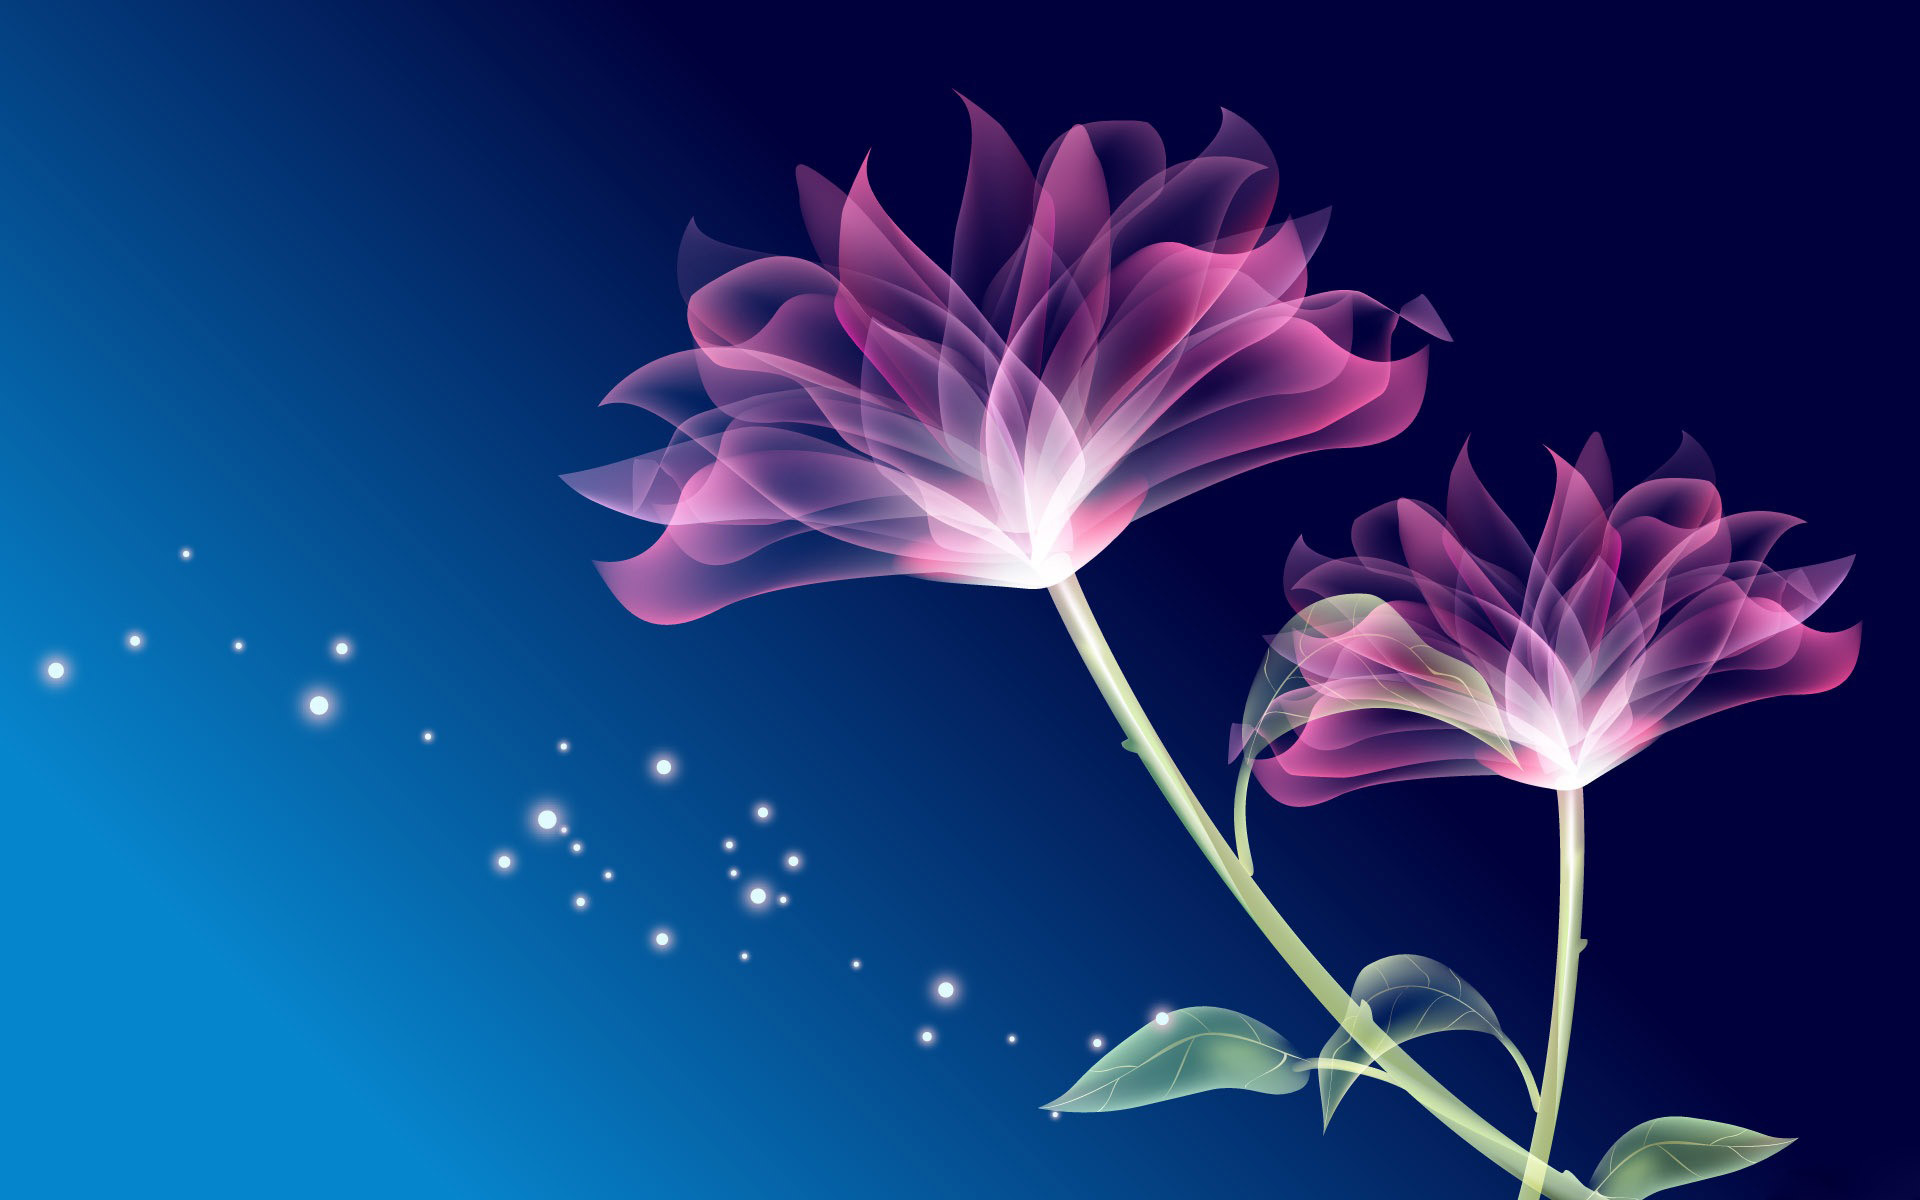 Beautiful Flower Wallpaper Images For